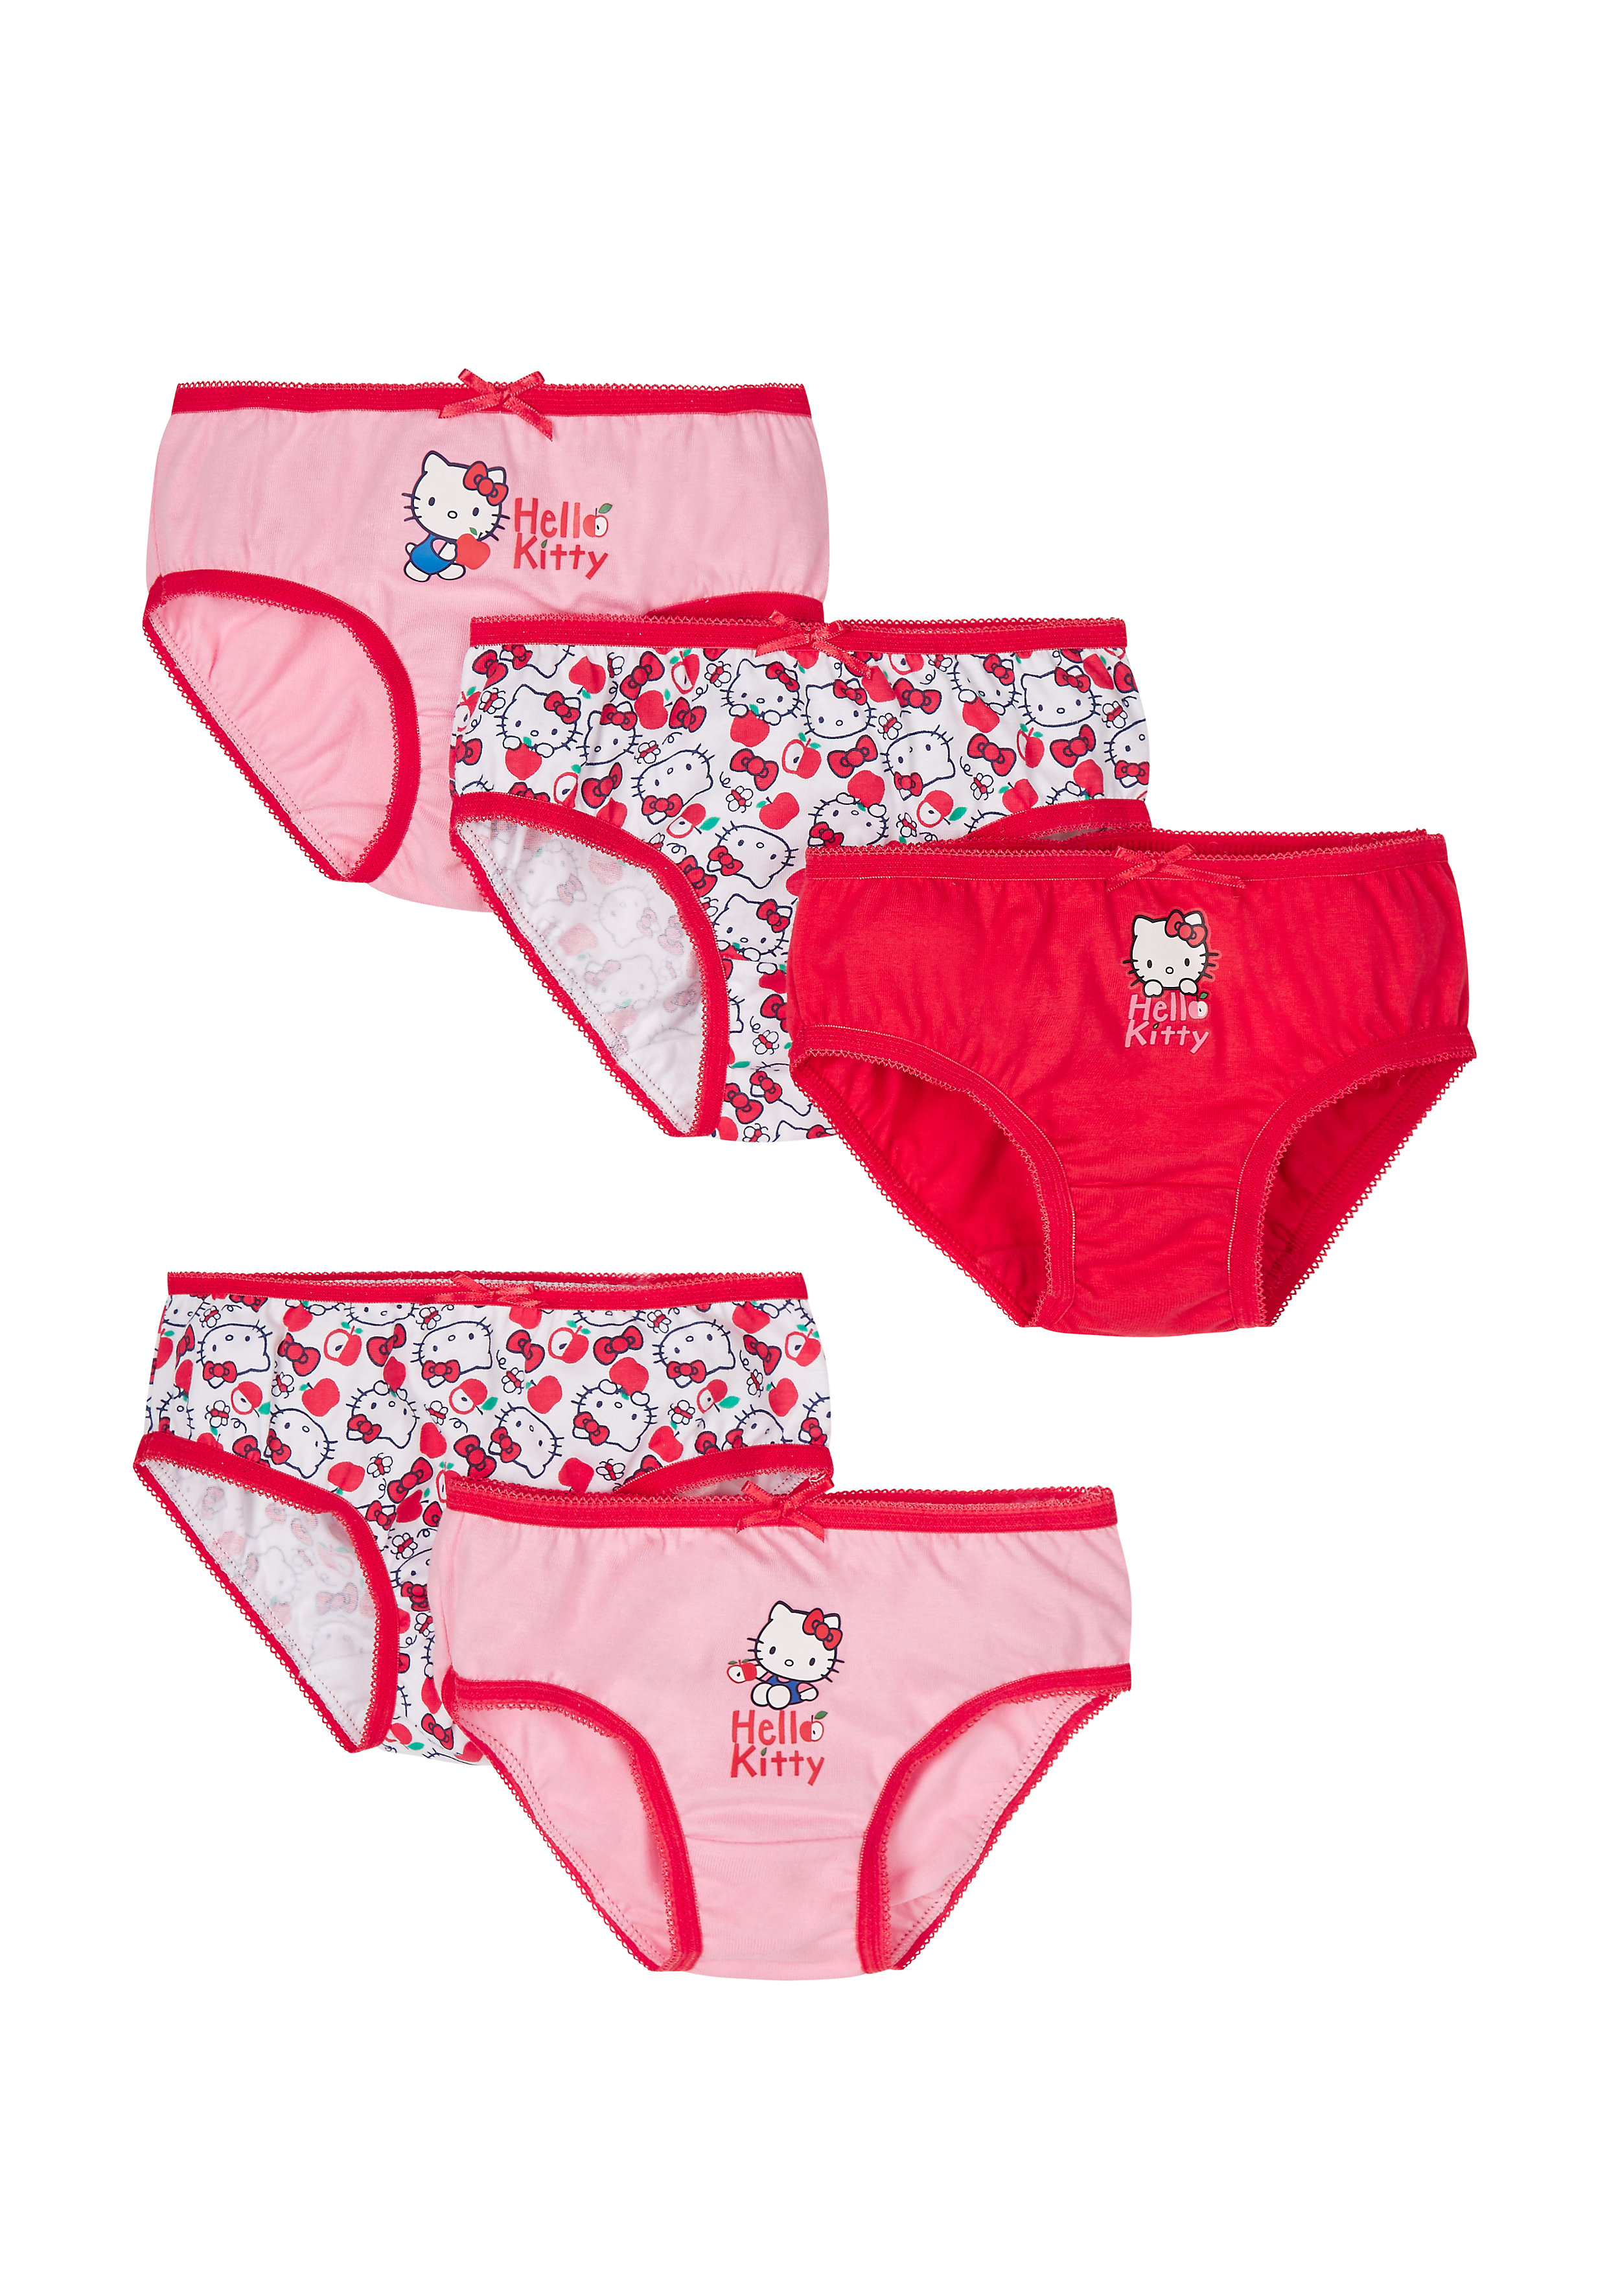 Mothercare | Girls Hello Kitty Briefs - 5 Pack - Red